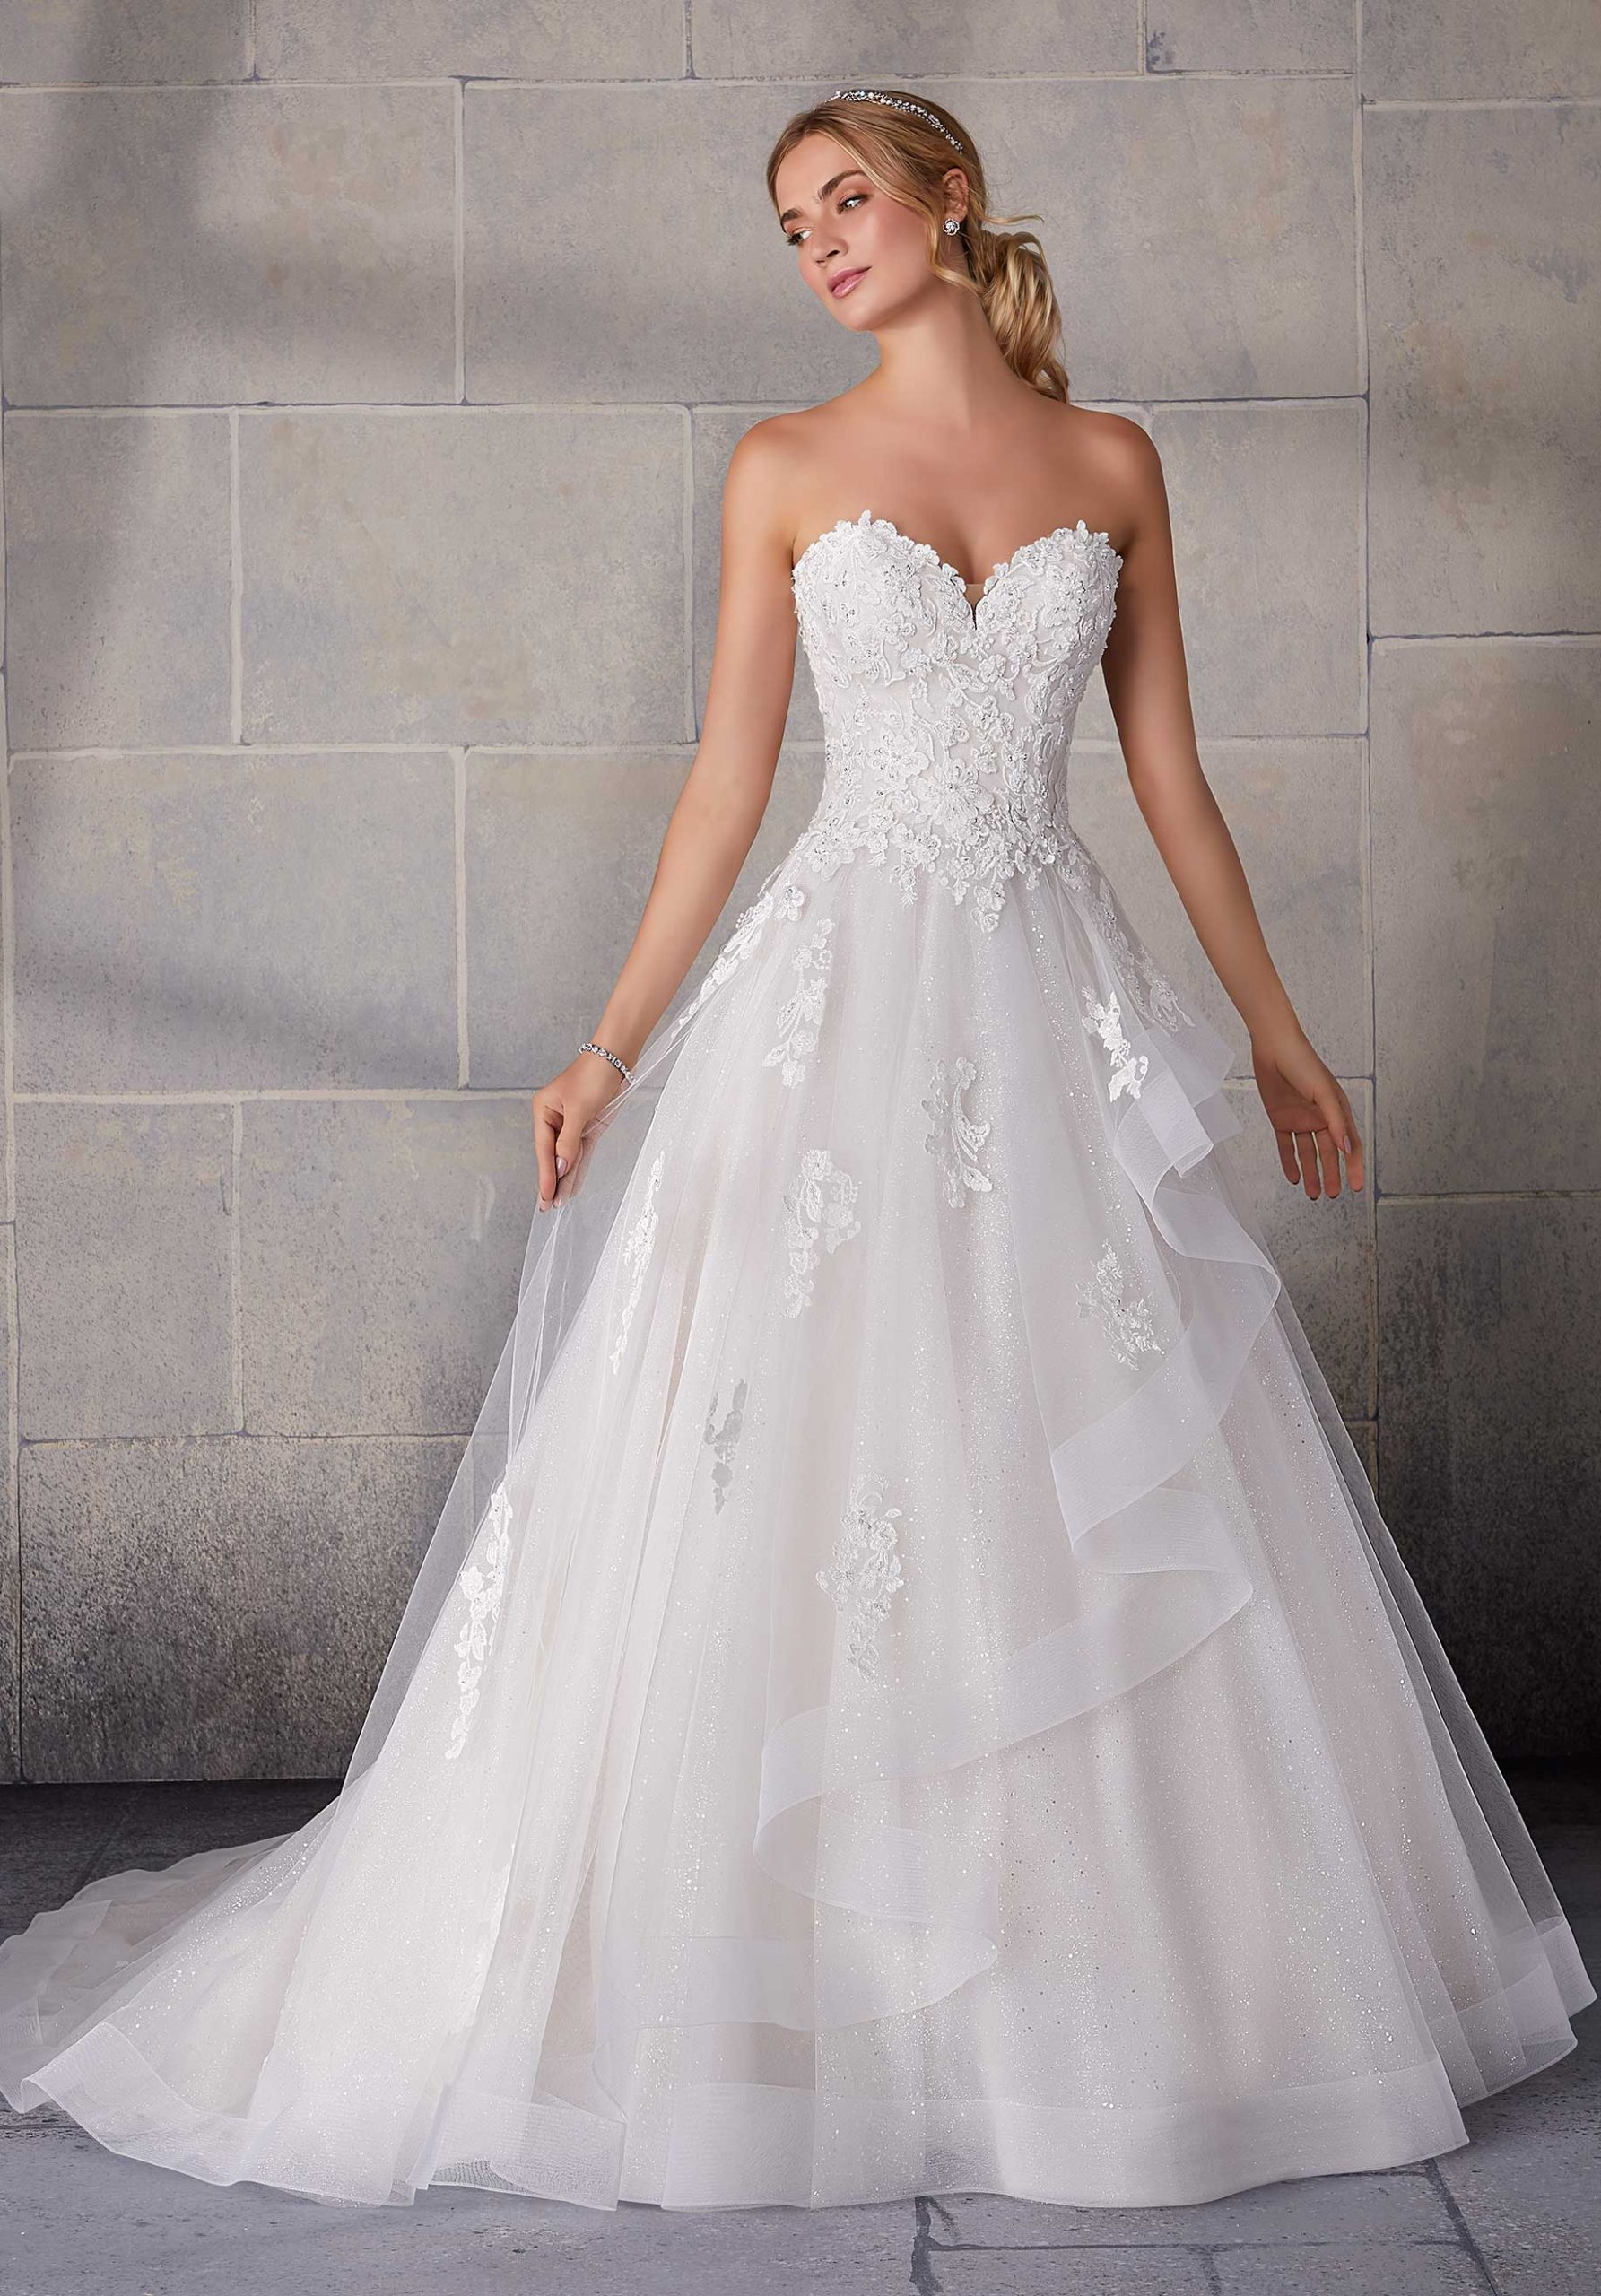 Choosing Your Perfect Wedding Dress